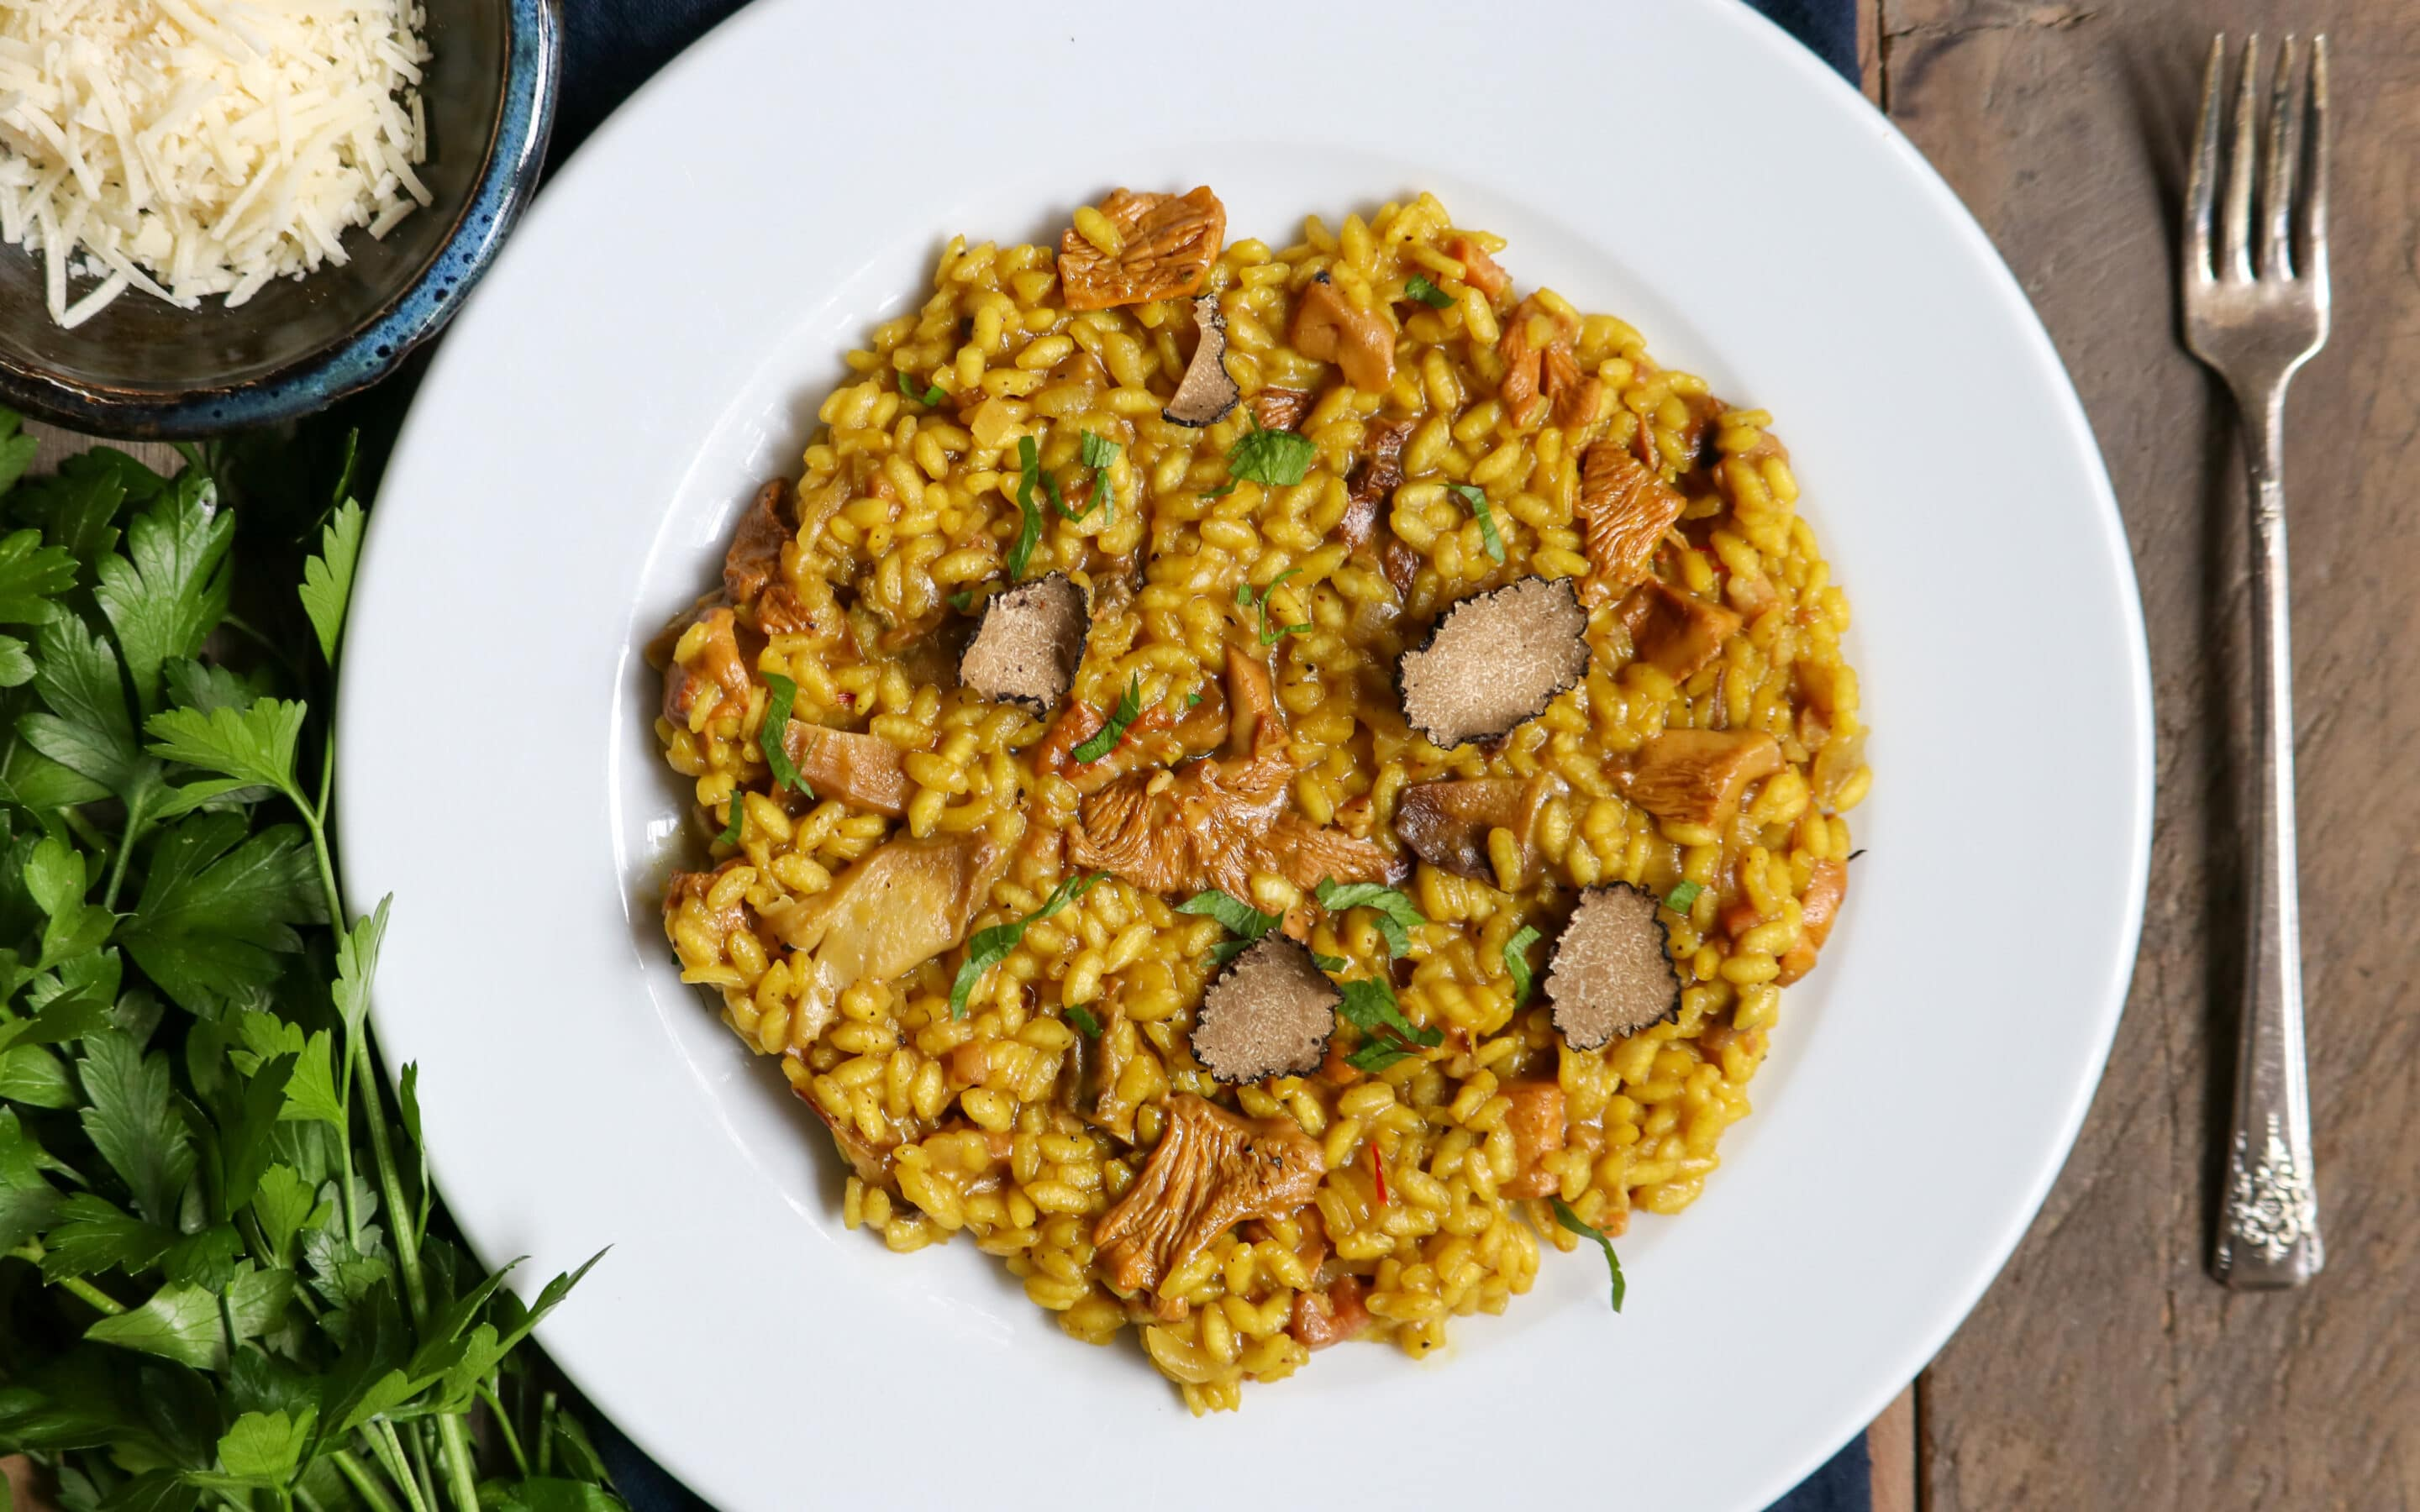 Chanterelle Mushroom risotto in a white bowl on a dinner table